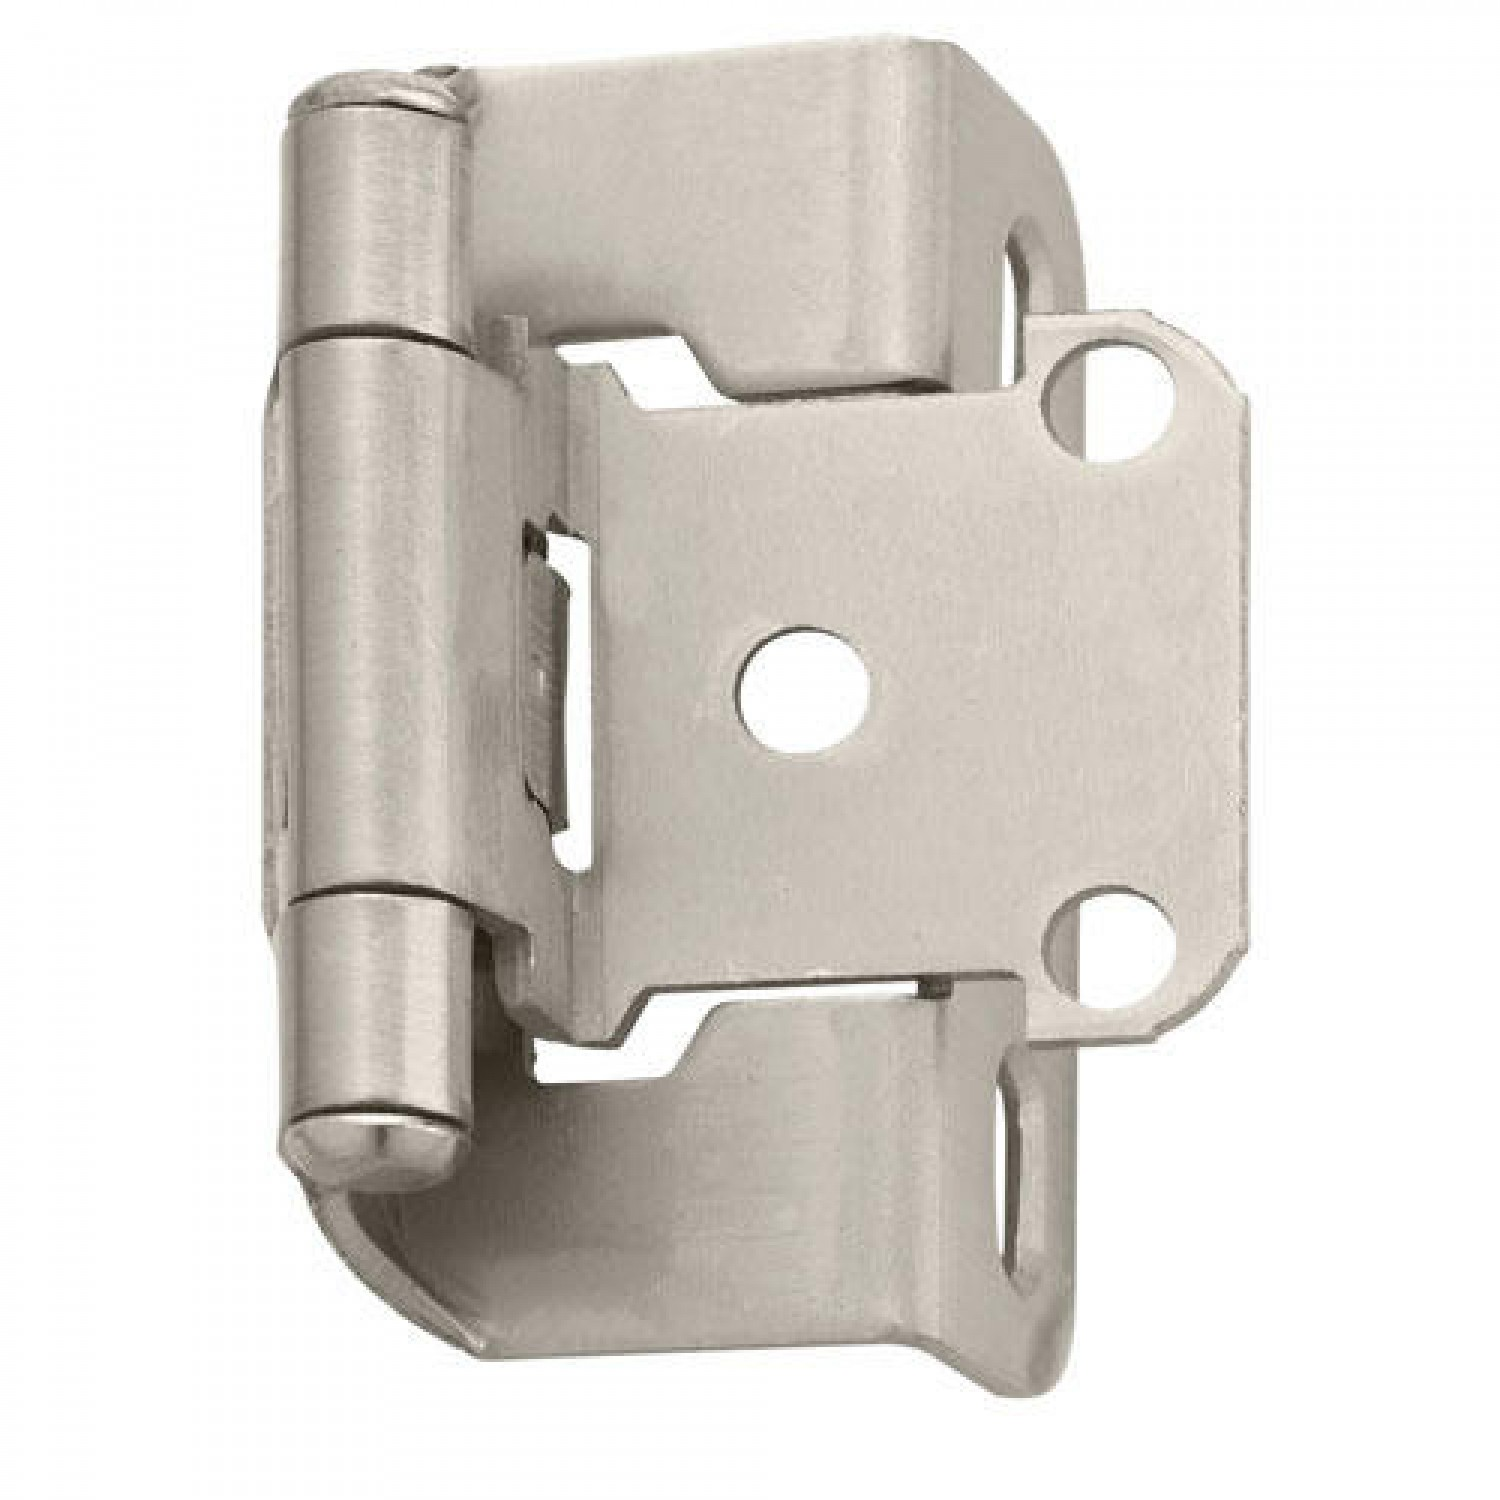 Self closing kitchen cabinet hinges Photo - 5